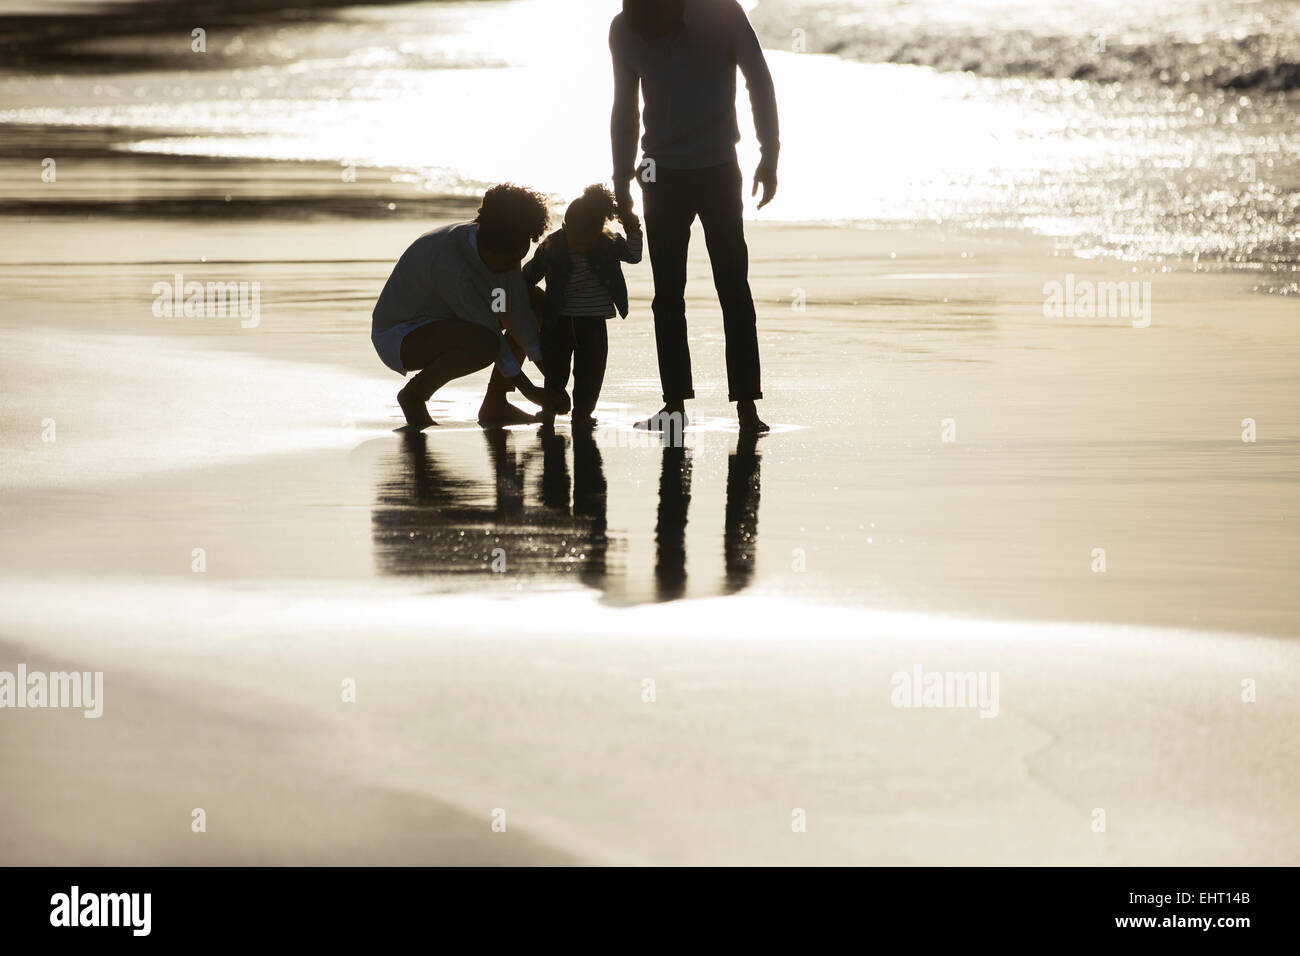 Silhouette of family on beach at sunset - Stock Image